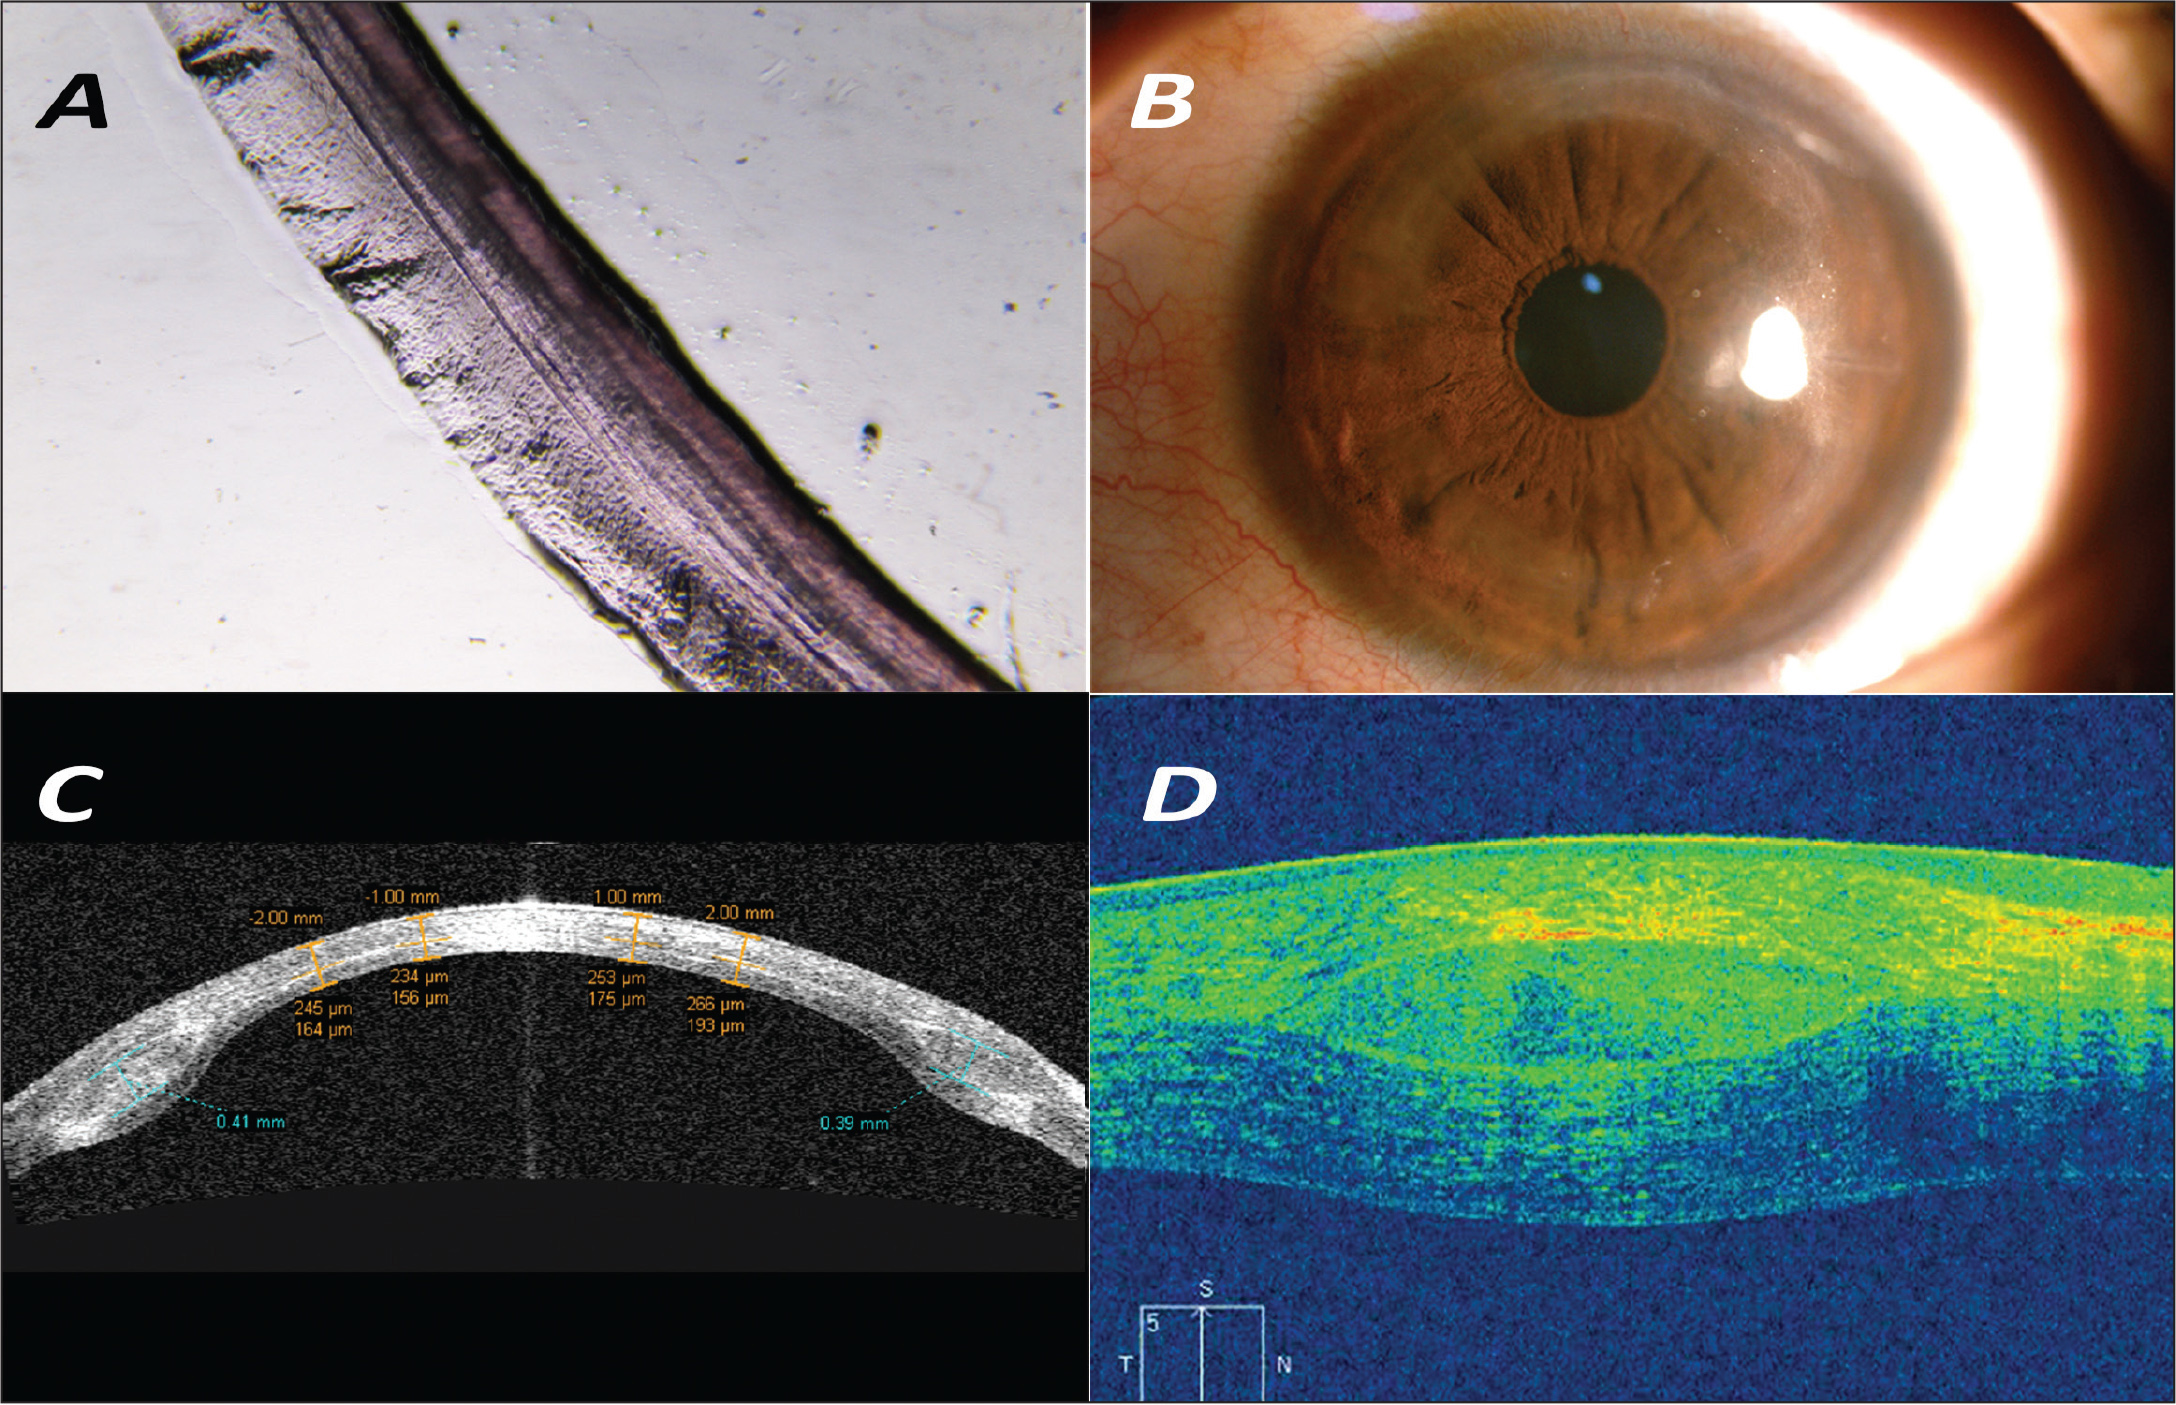 Corneal allogenic intrastromal ring segments (CAIRS) postoperatively. (A) Light microscopic image of the CAIRS showing regular, even cuts and structurally unaltered normal corneal tissue. (B) Slit-lamp photograph showing the CAIRS. (C) Time-domain anterior segment optical coherence tomography (AS-OCT) showing the CAIRS and demarcation line. (D) Spectral-domain AS-OCT showing the CAIRS.